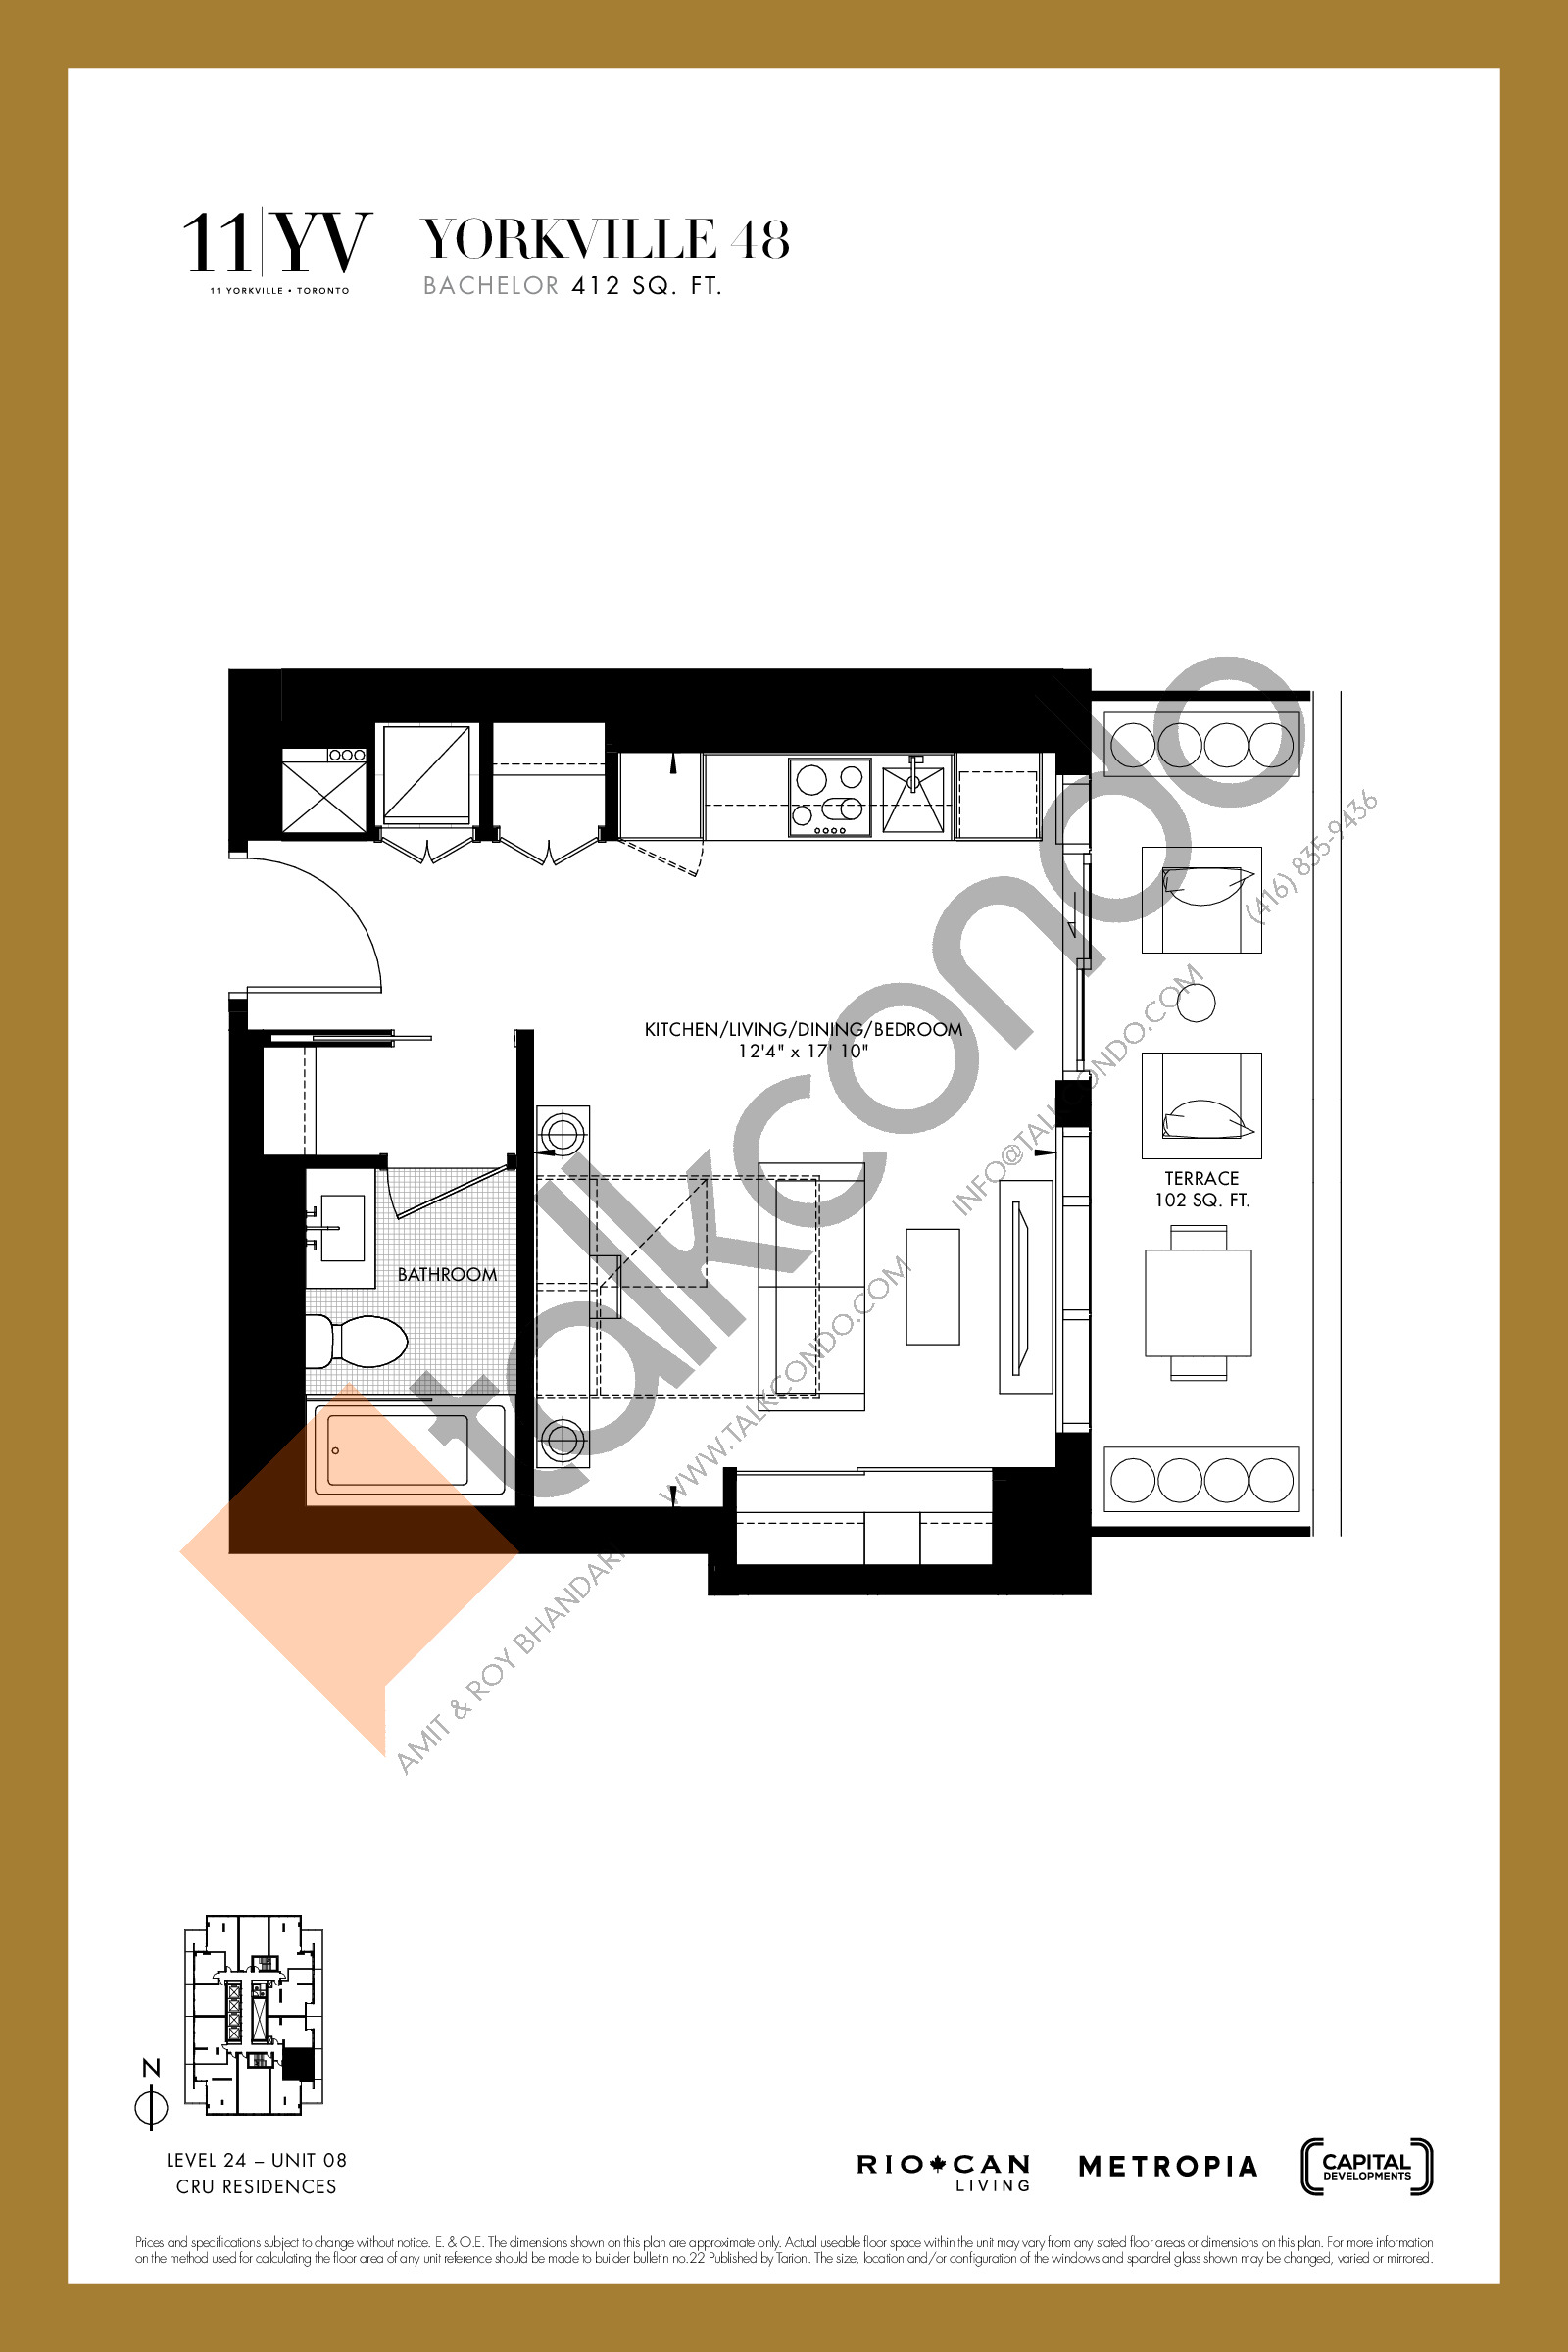 Yorkville 48 Floor Plan at 11YV Condos - 412 sq.ft